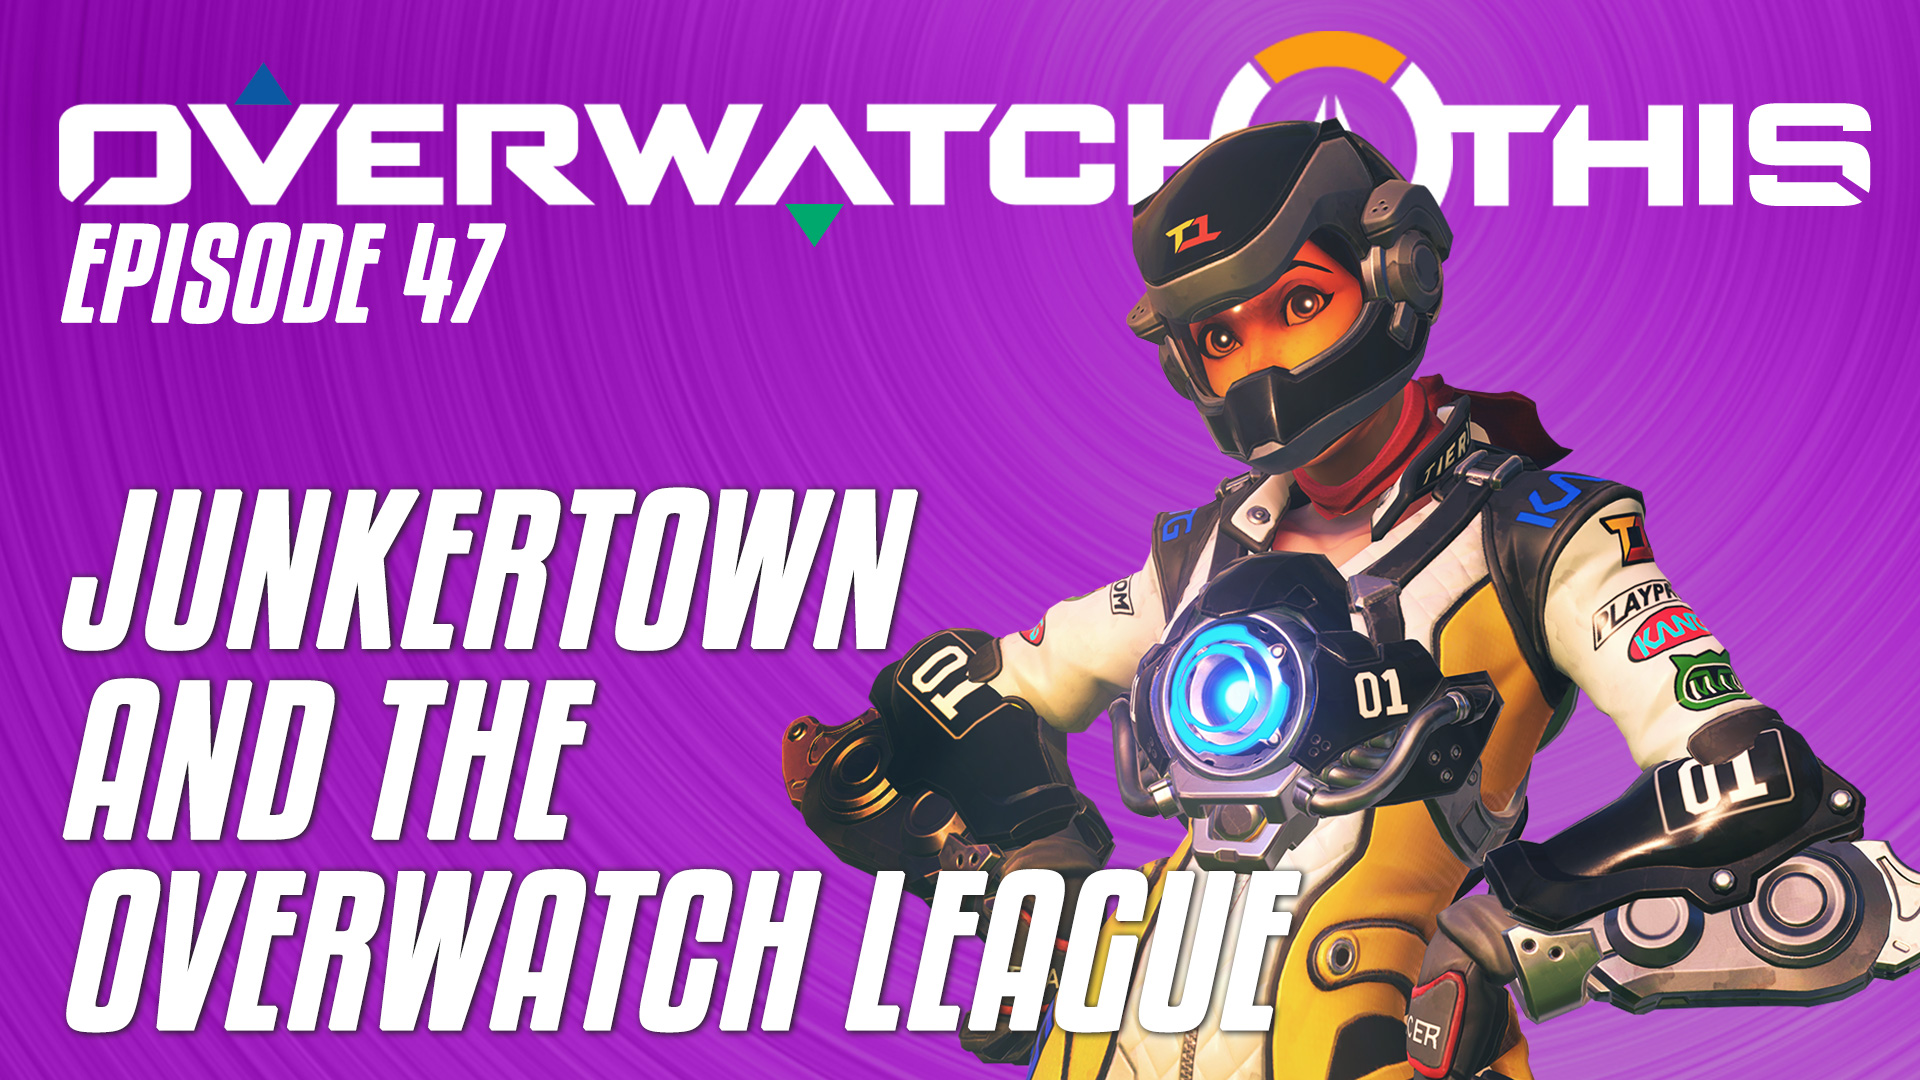 Overwatch This episode 47: Junkertown and the Overwatch League are on their way